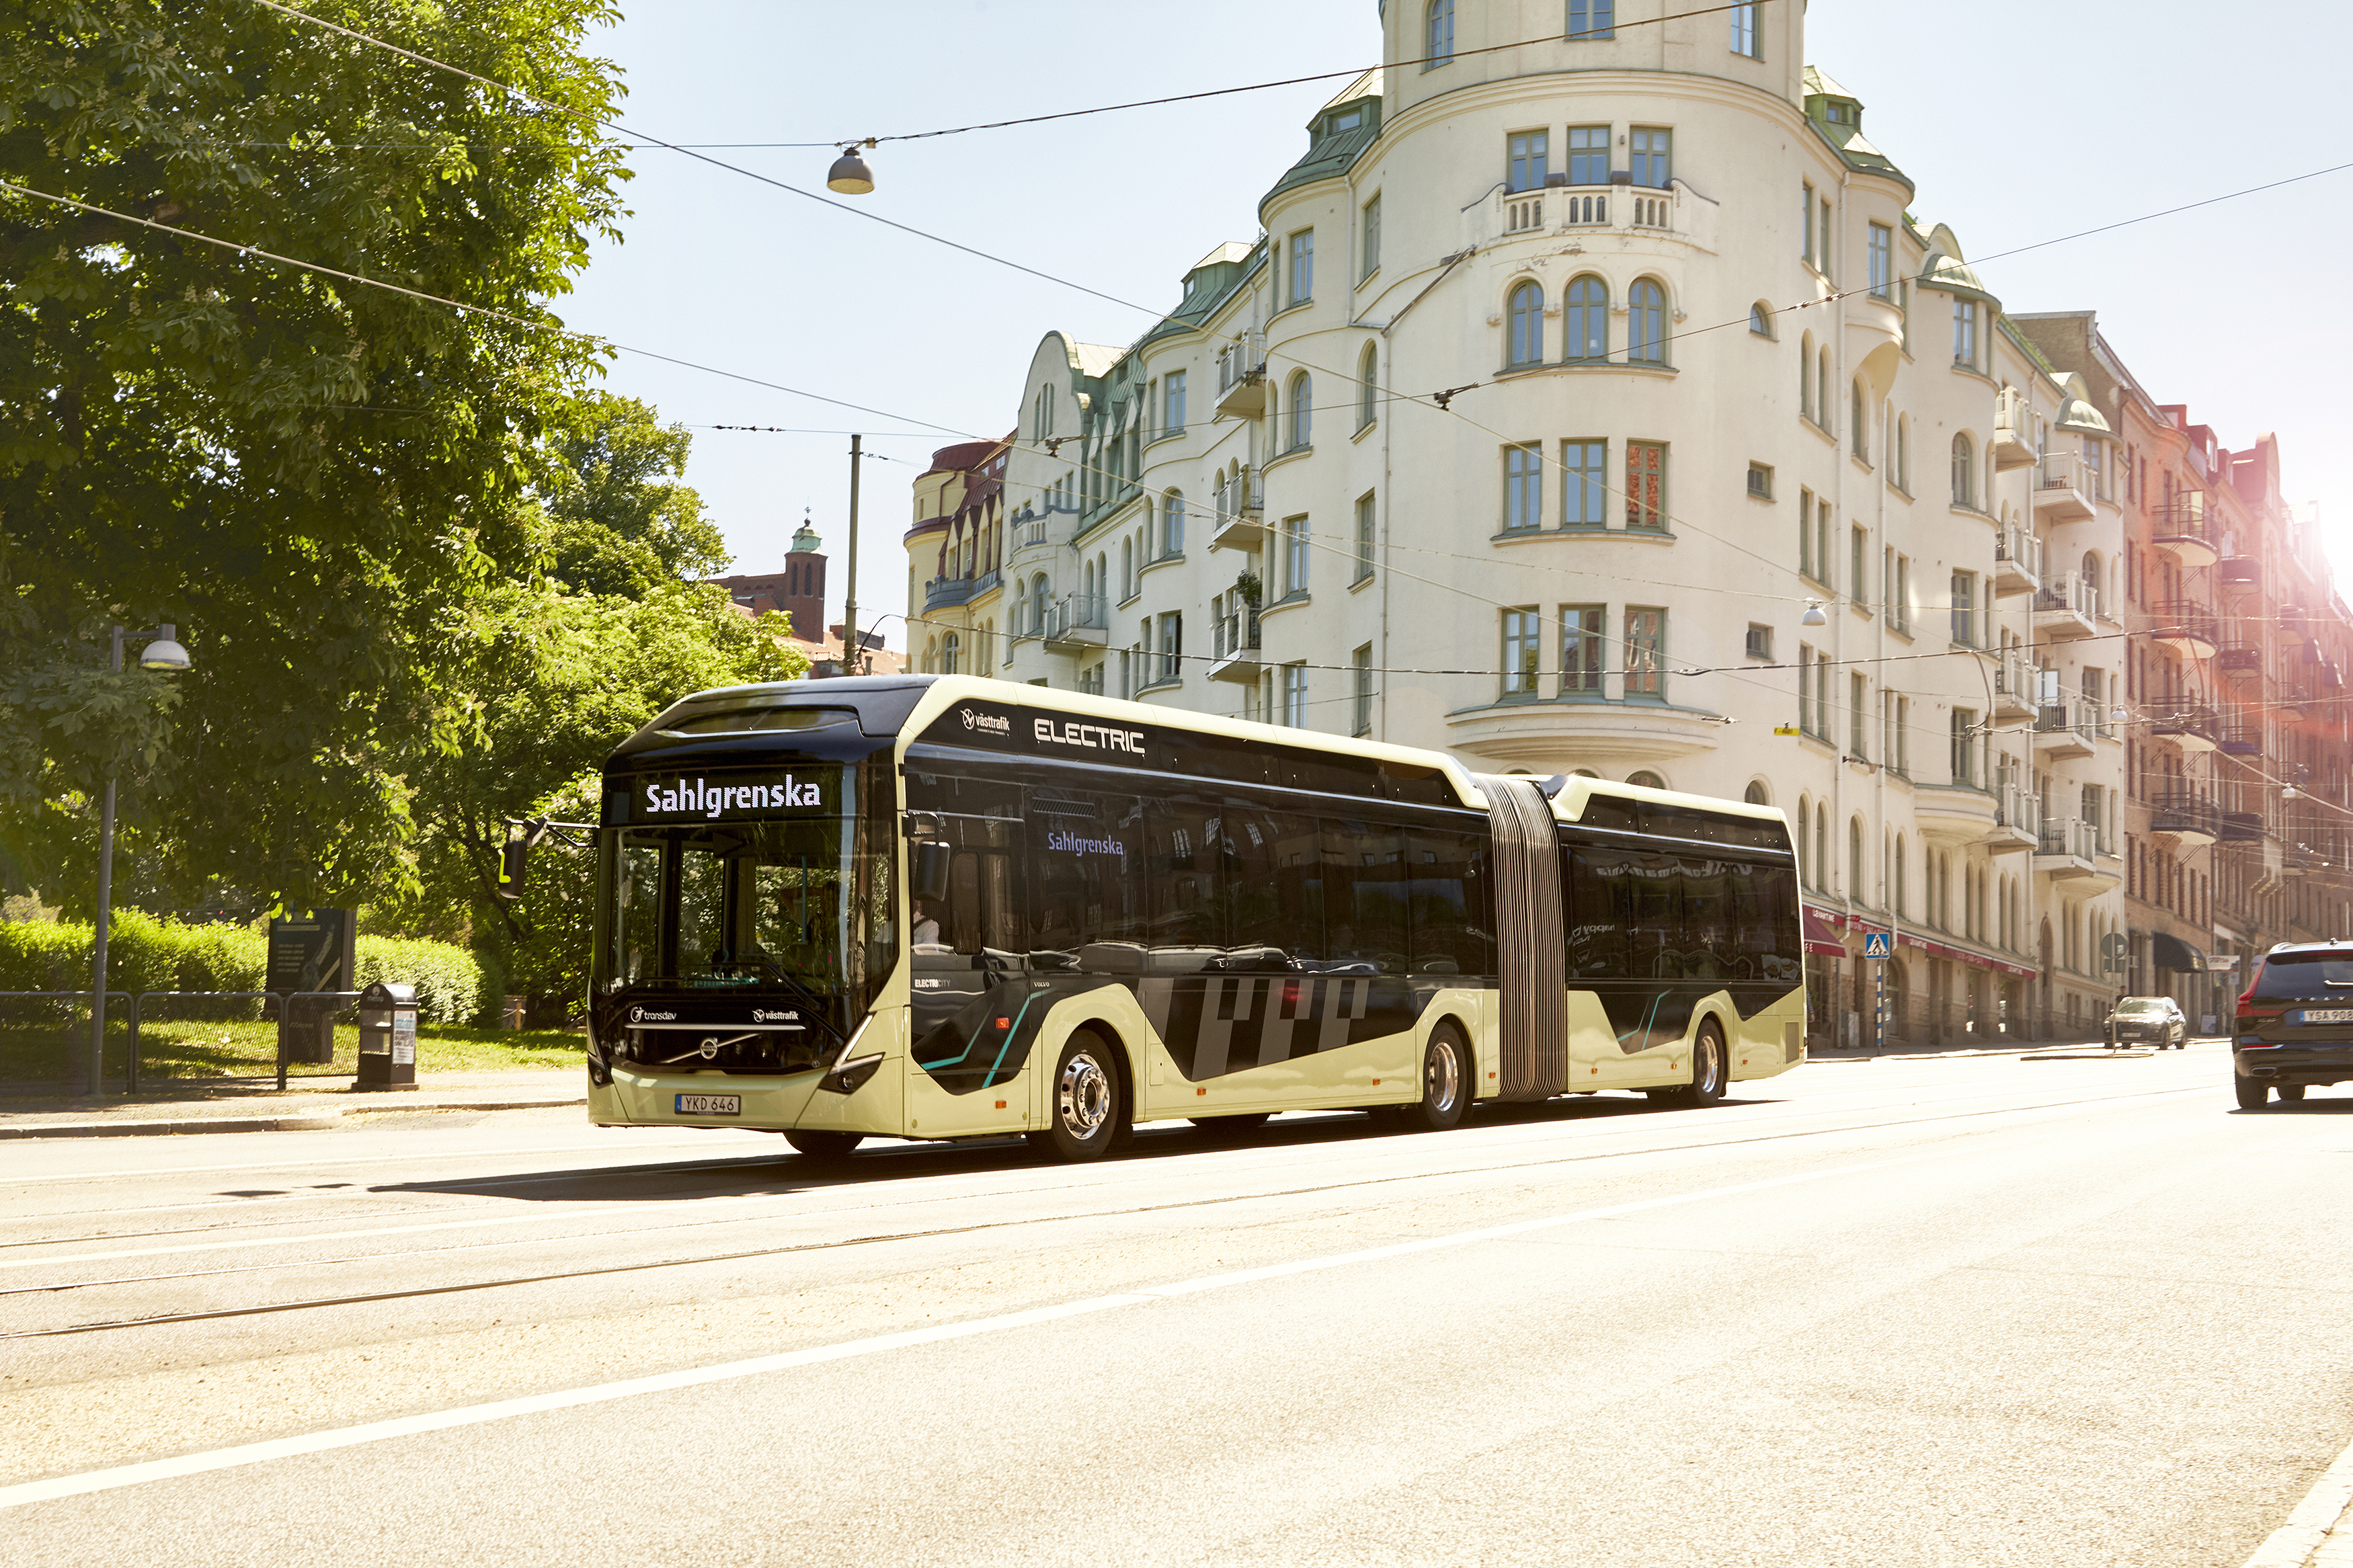 volvo_electric_articulated_concept_bus_3_1.jpg